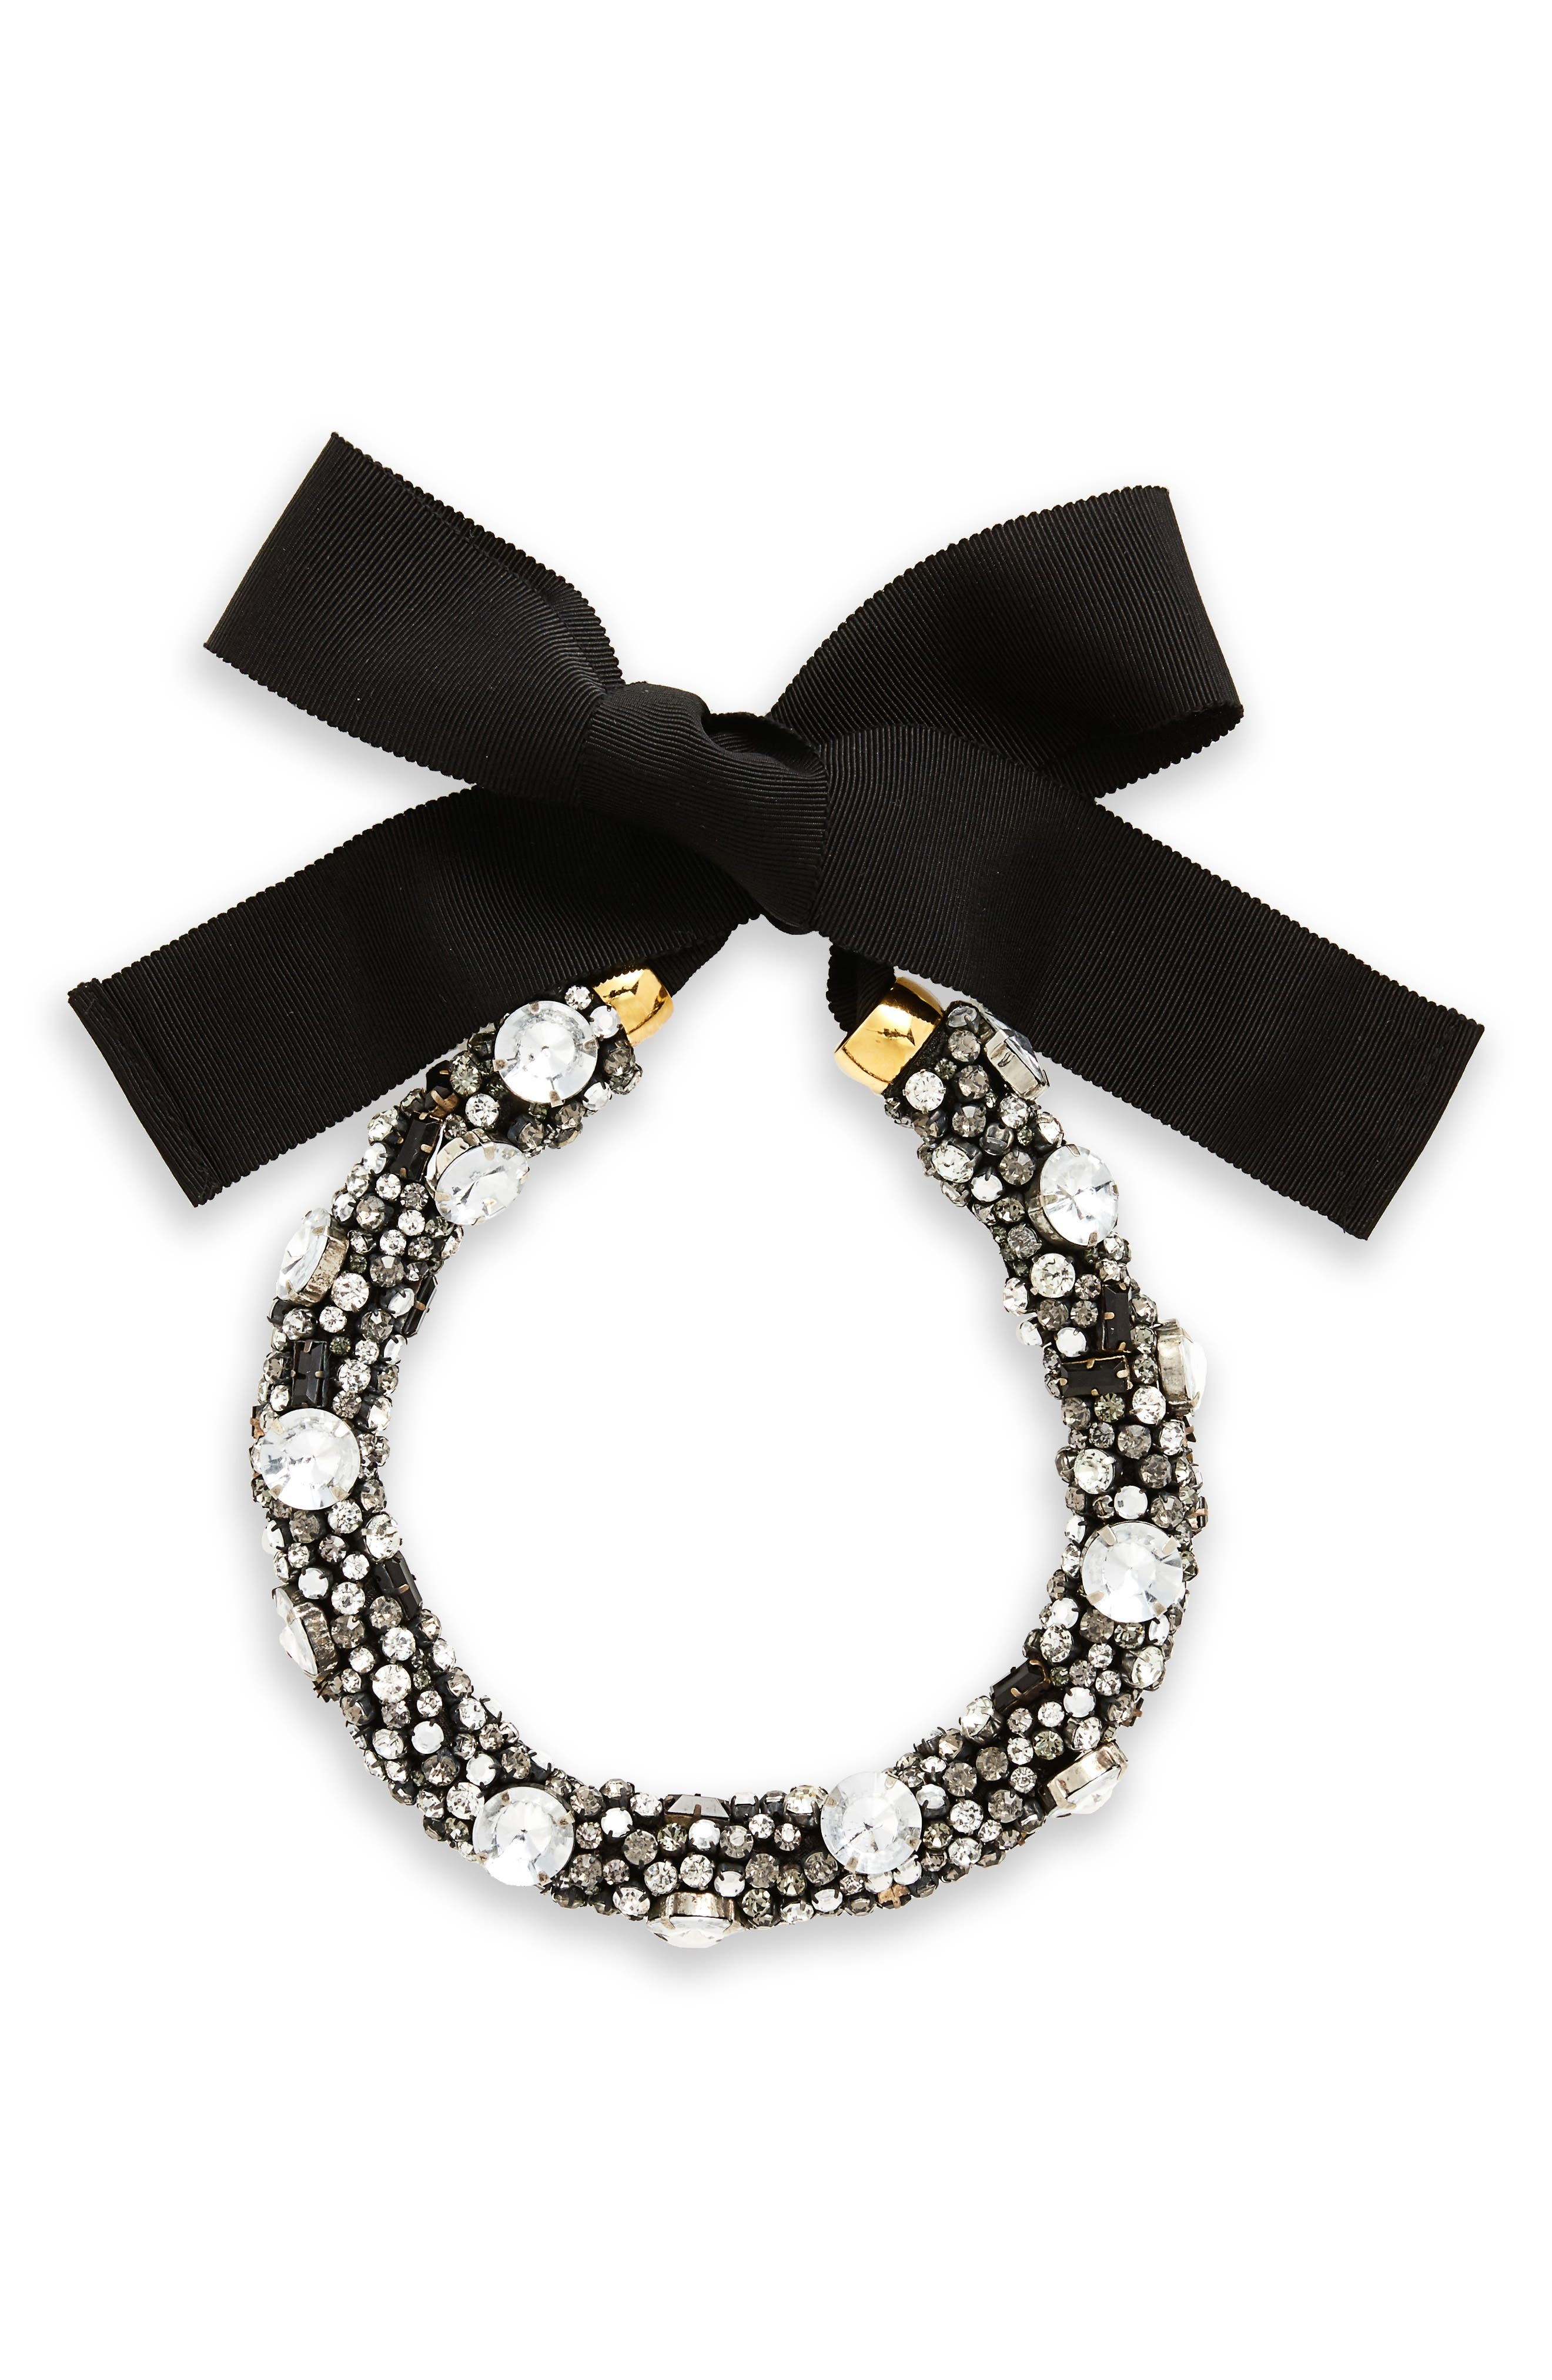 Main Image - Lizzie Fortunato African Sky Collar Necklace